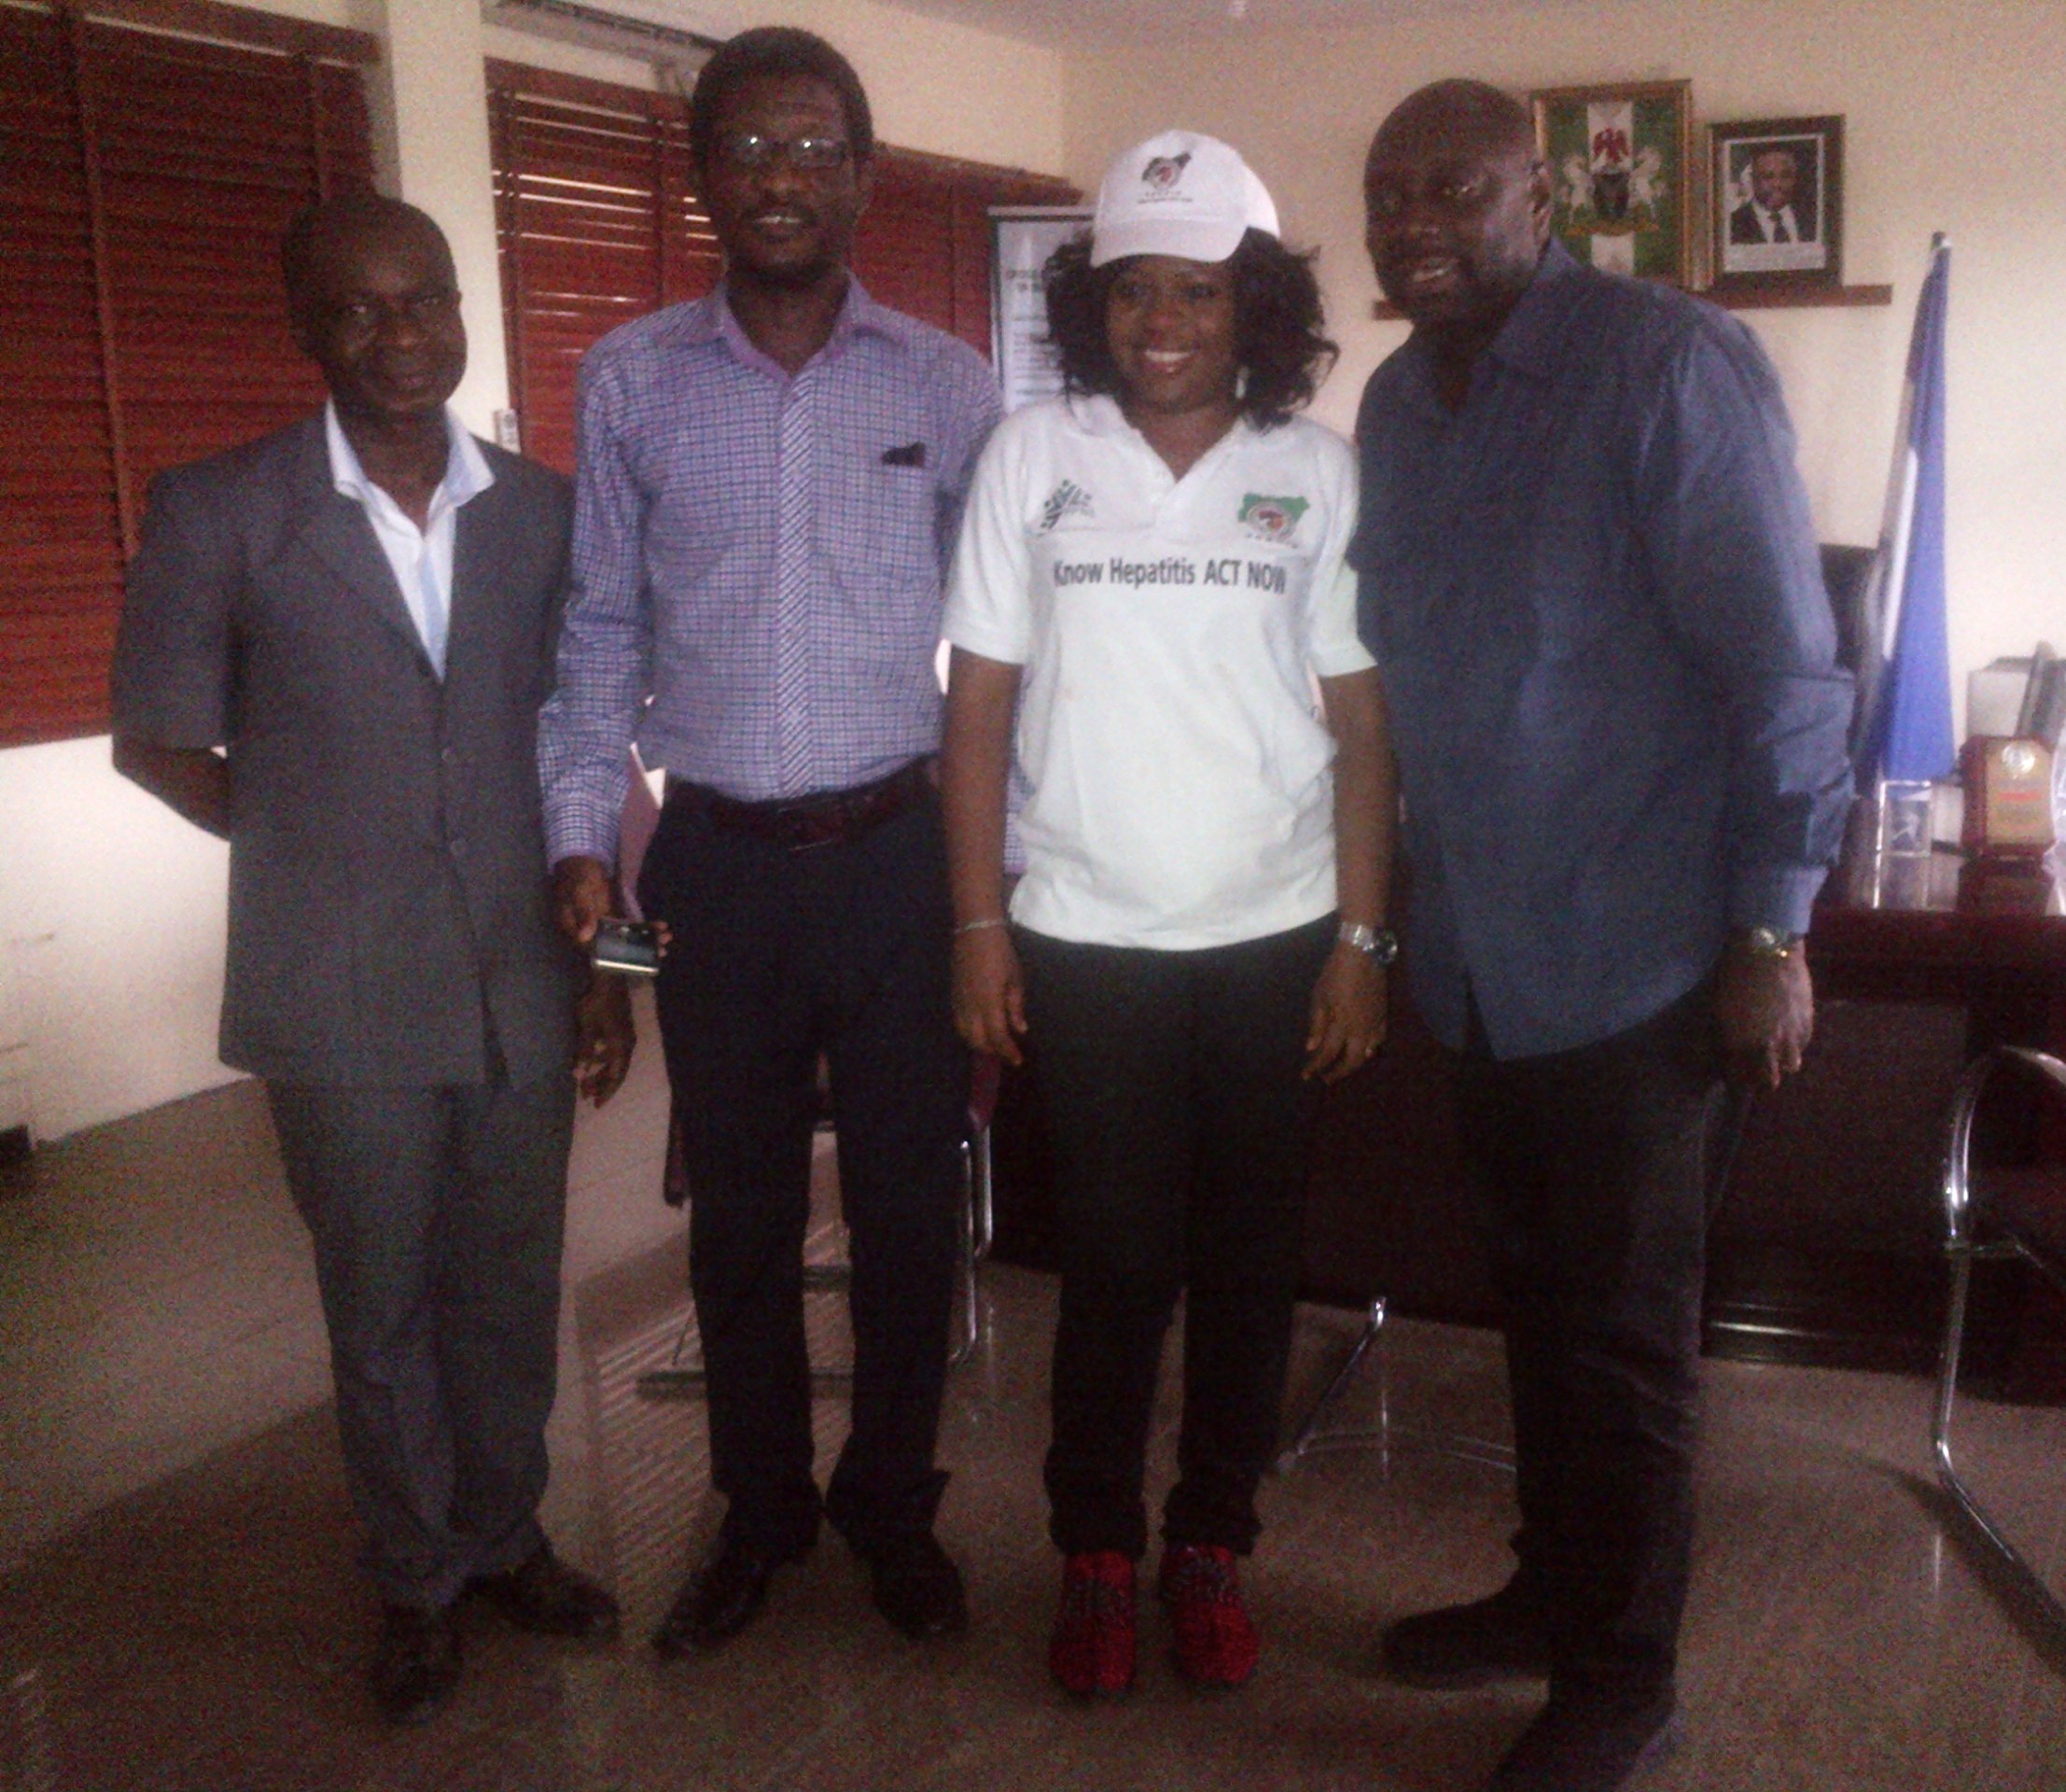 From R-L: Segun Arinze, Health Commissioner Inyang Asibong and Fidelis Duker after the visit